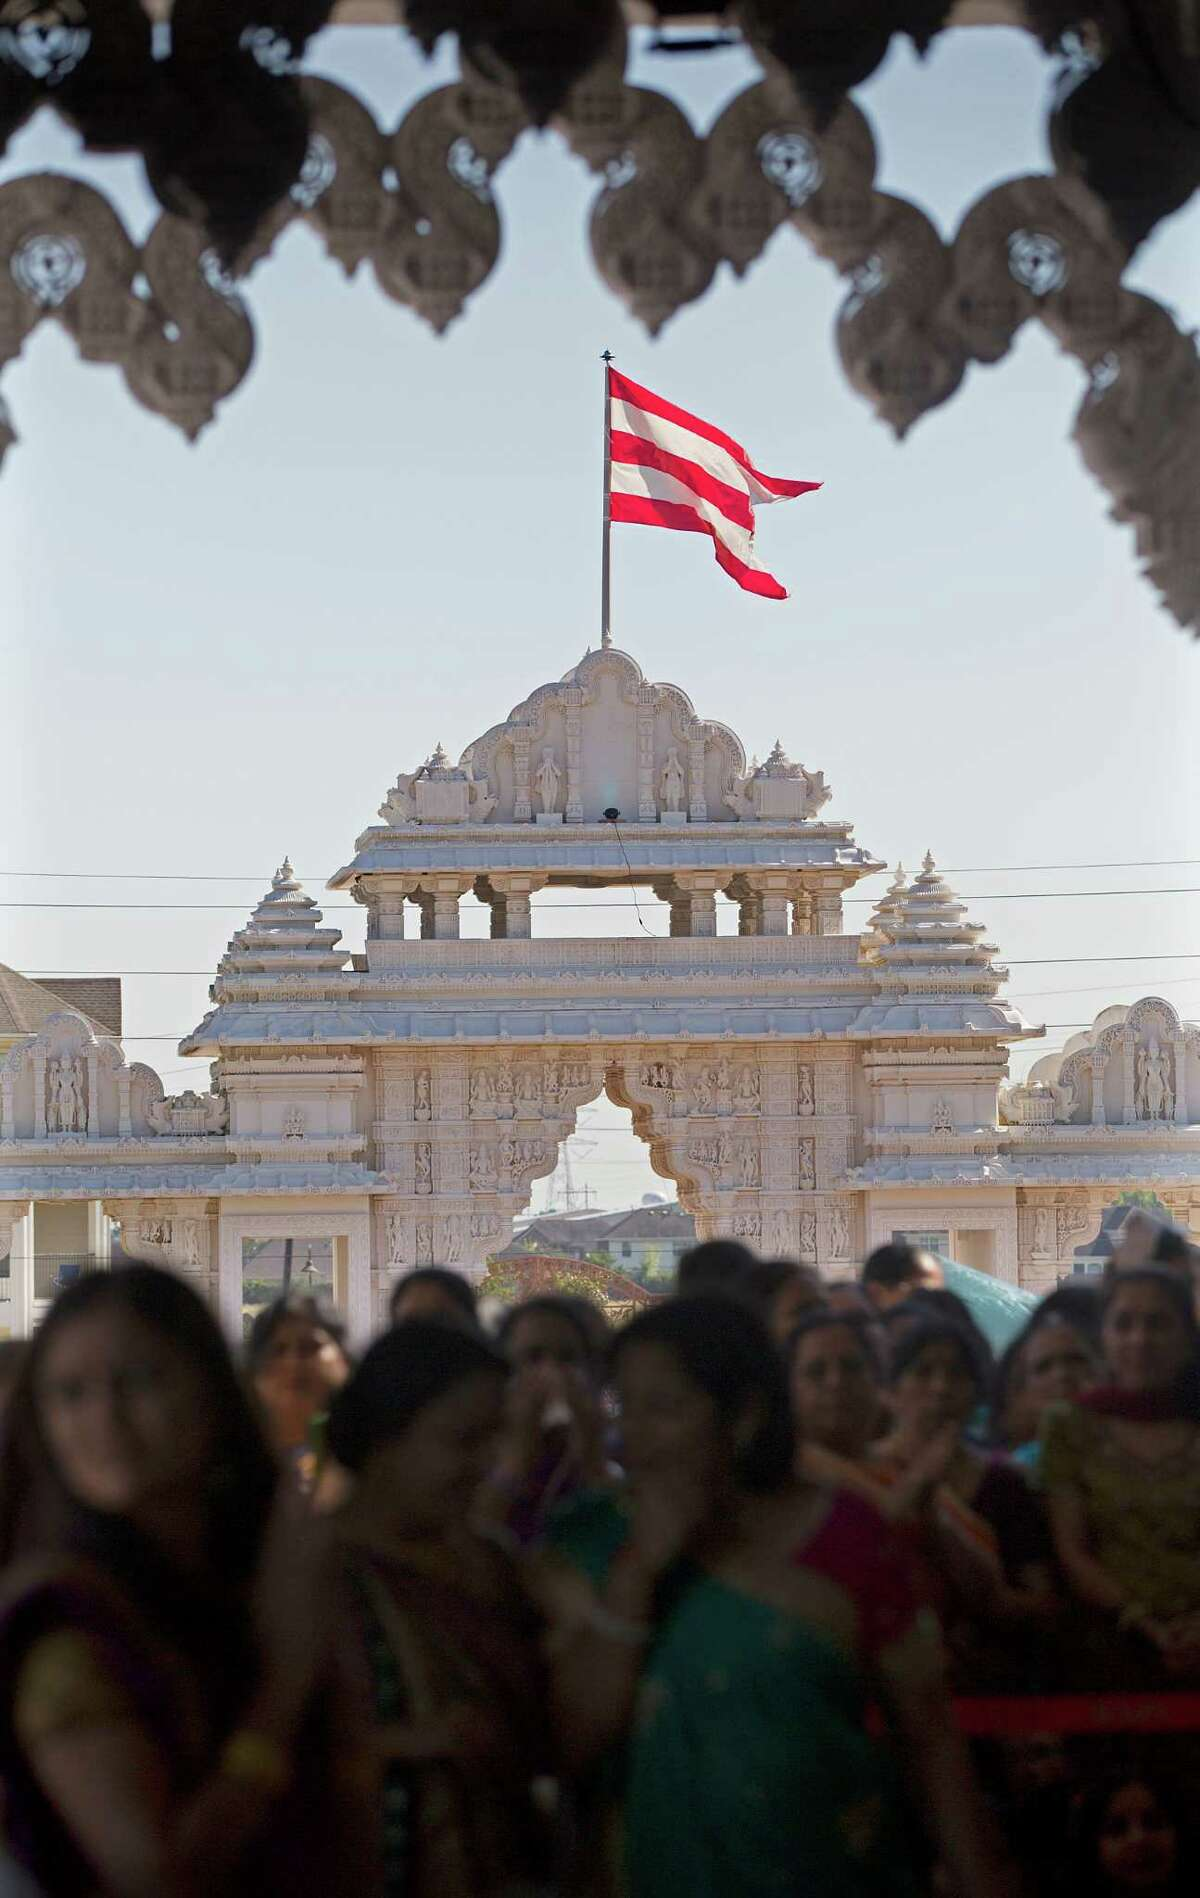 The BAPS flag waves in the background as worshipers offer their prayers, songs and chants to usher in the Hindu New Year during Annakoot celebrations, the day after Diwali at the BAPS Shri Swaminarayan Mandir Friday, Oct. 24, 2014, in Stafford.